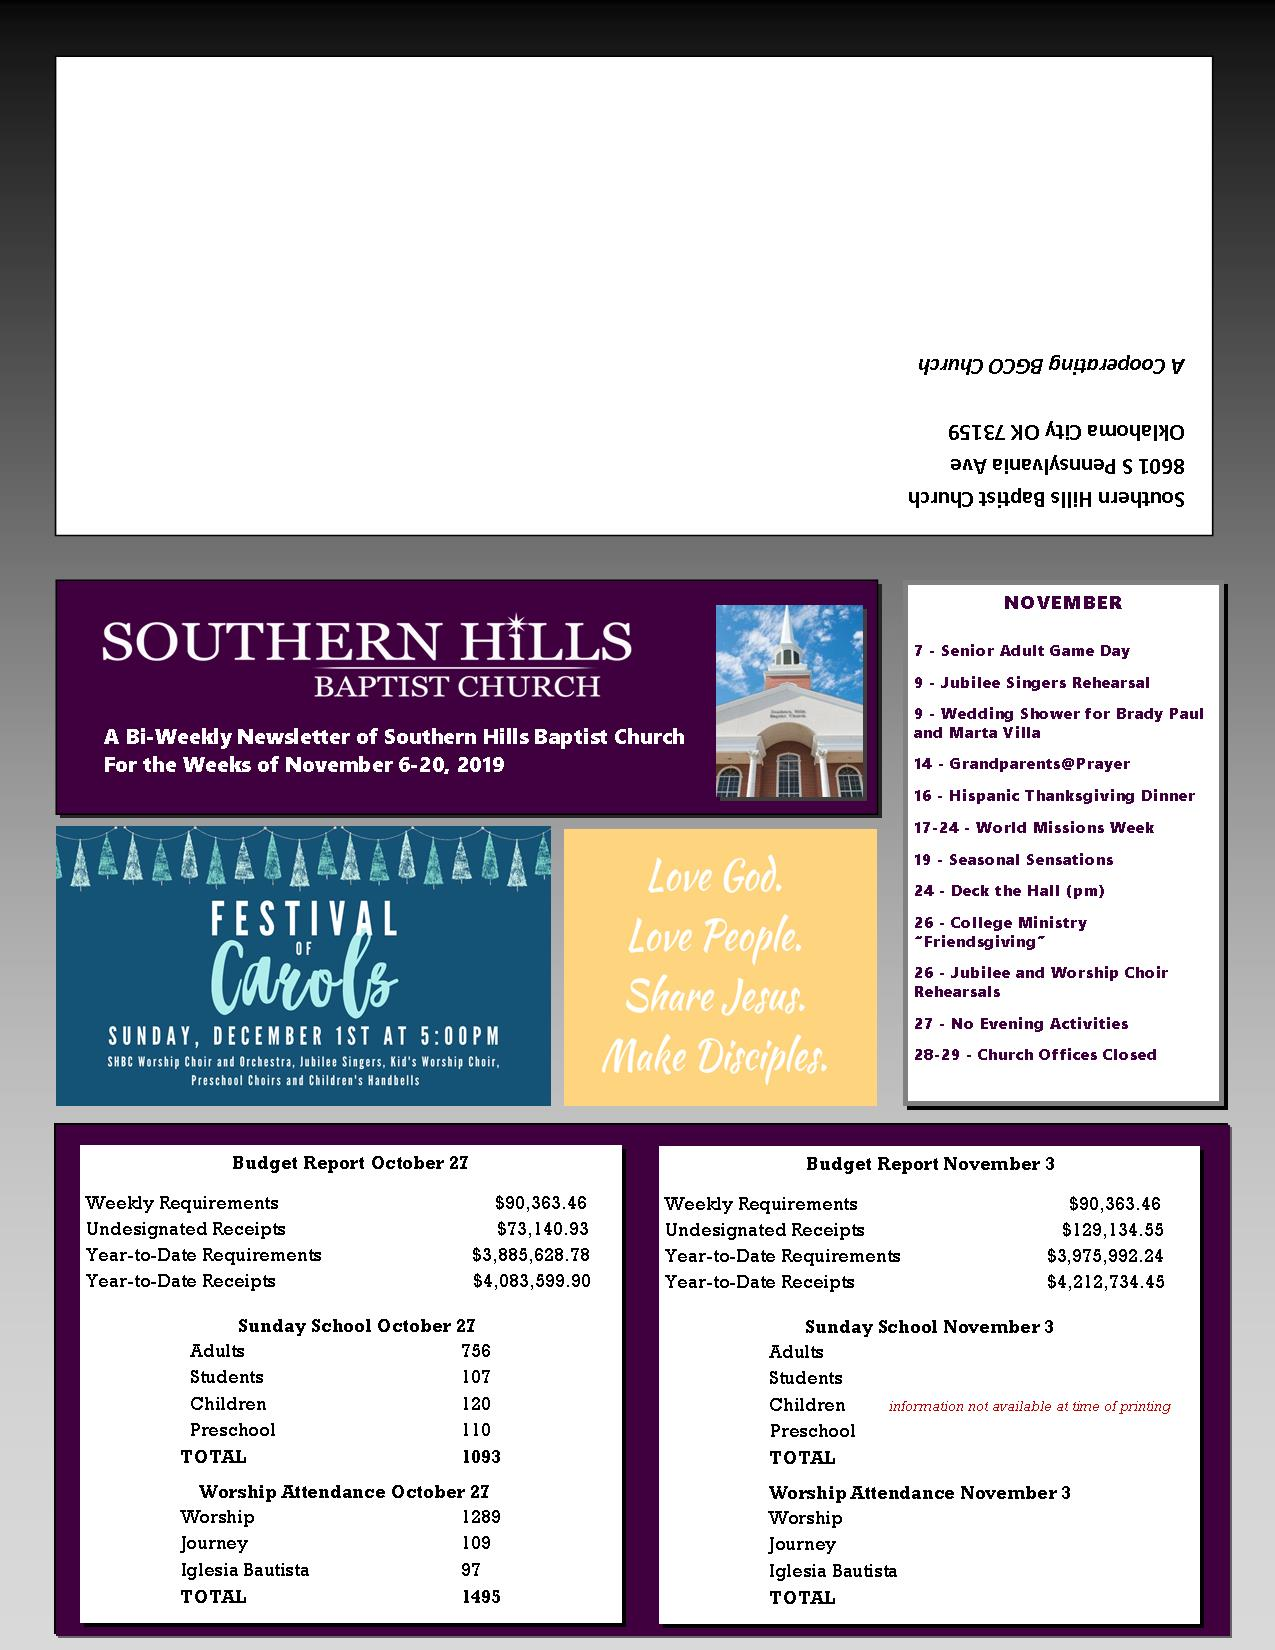 SHBC OKC Newsletter 11-6-19